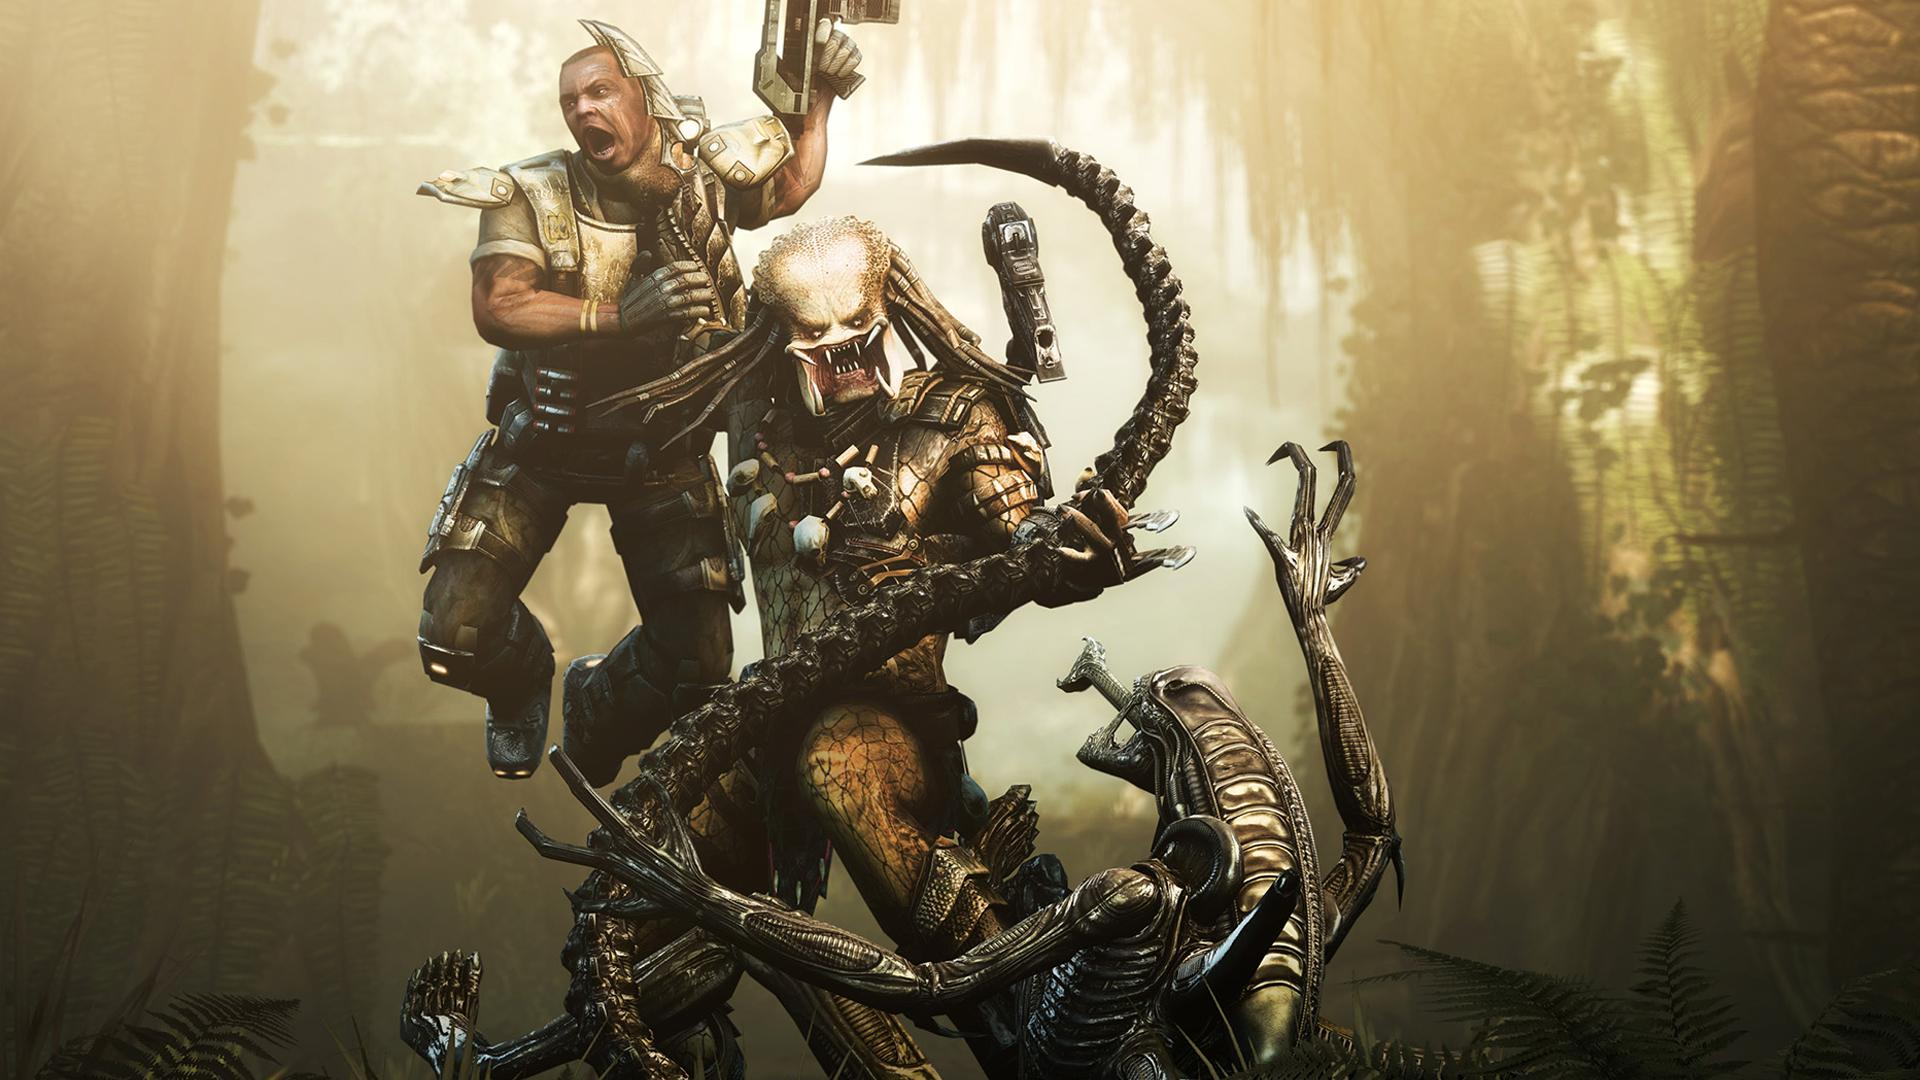 Predator wallpapers hd wallpaper cave free download aliens vs predator hd wallpaper aliens vs predator voltagebd Choice Image